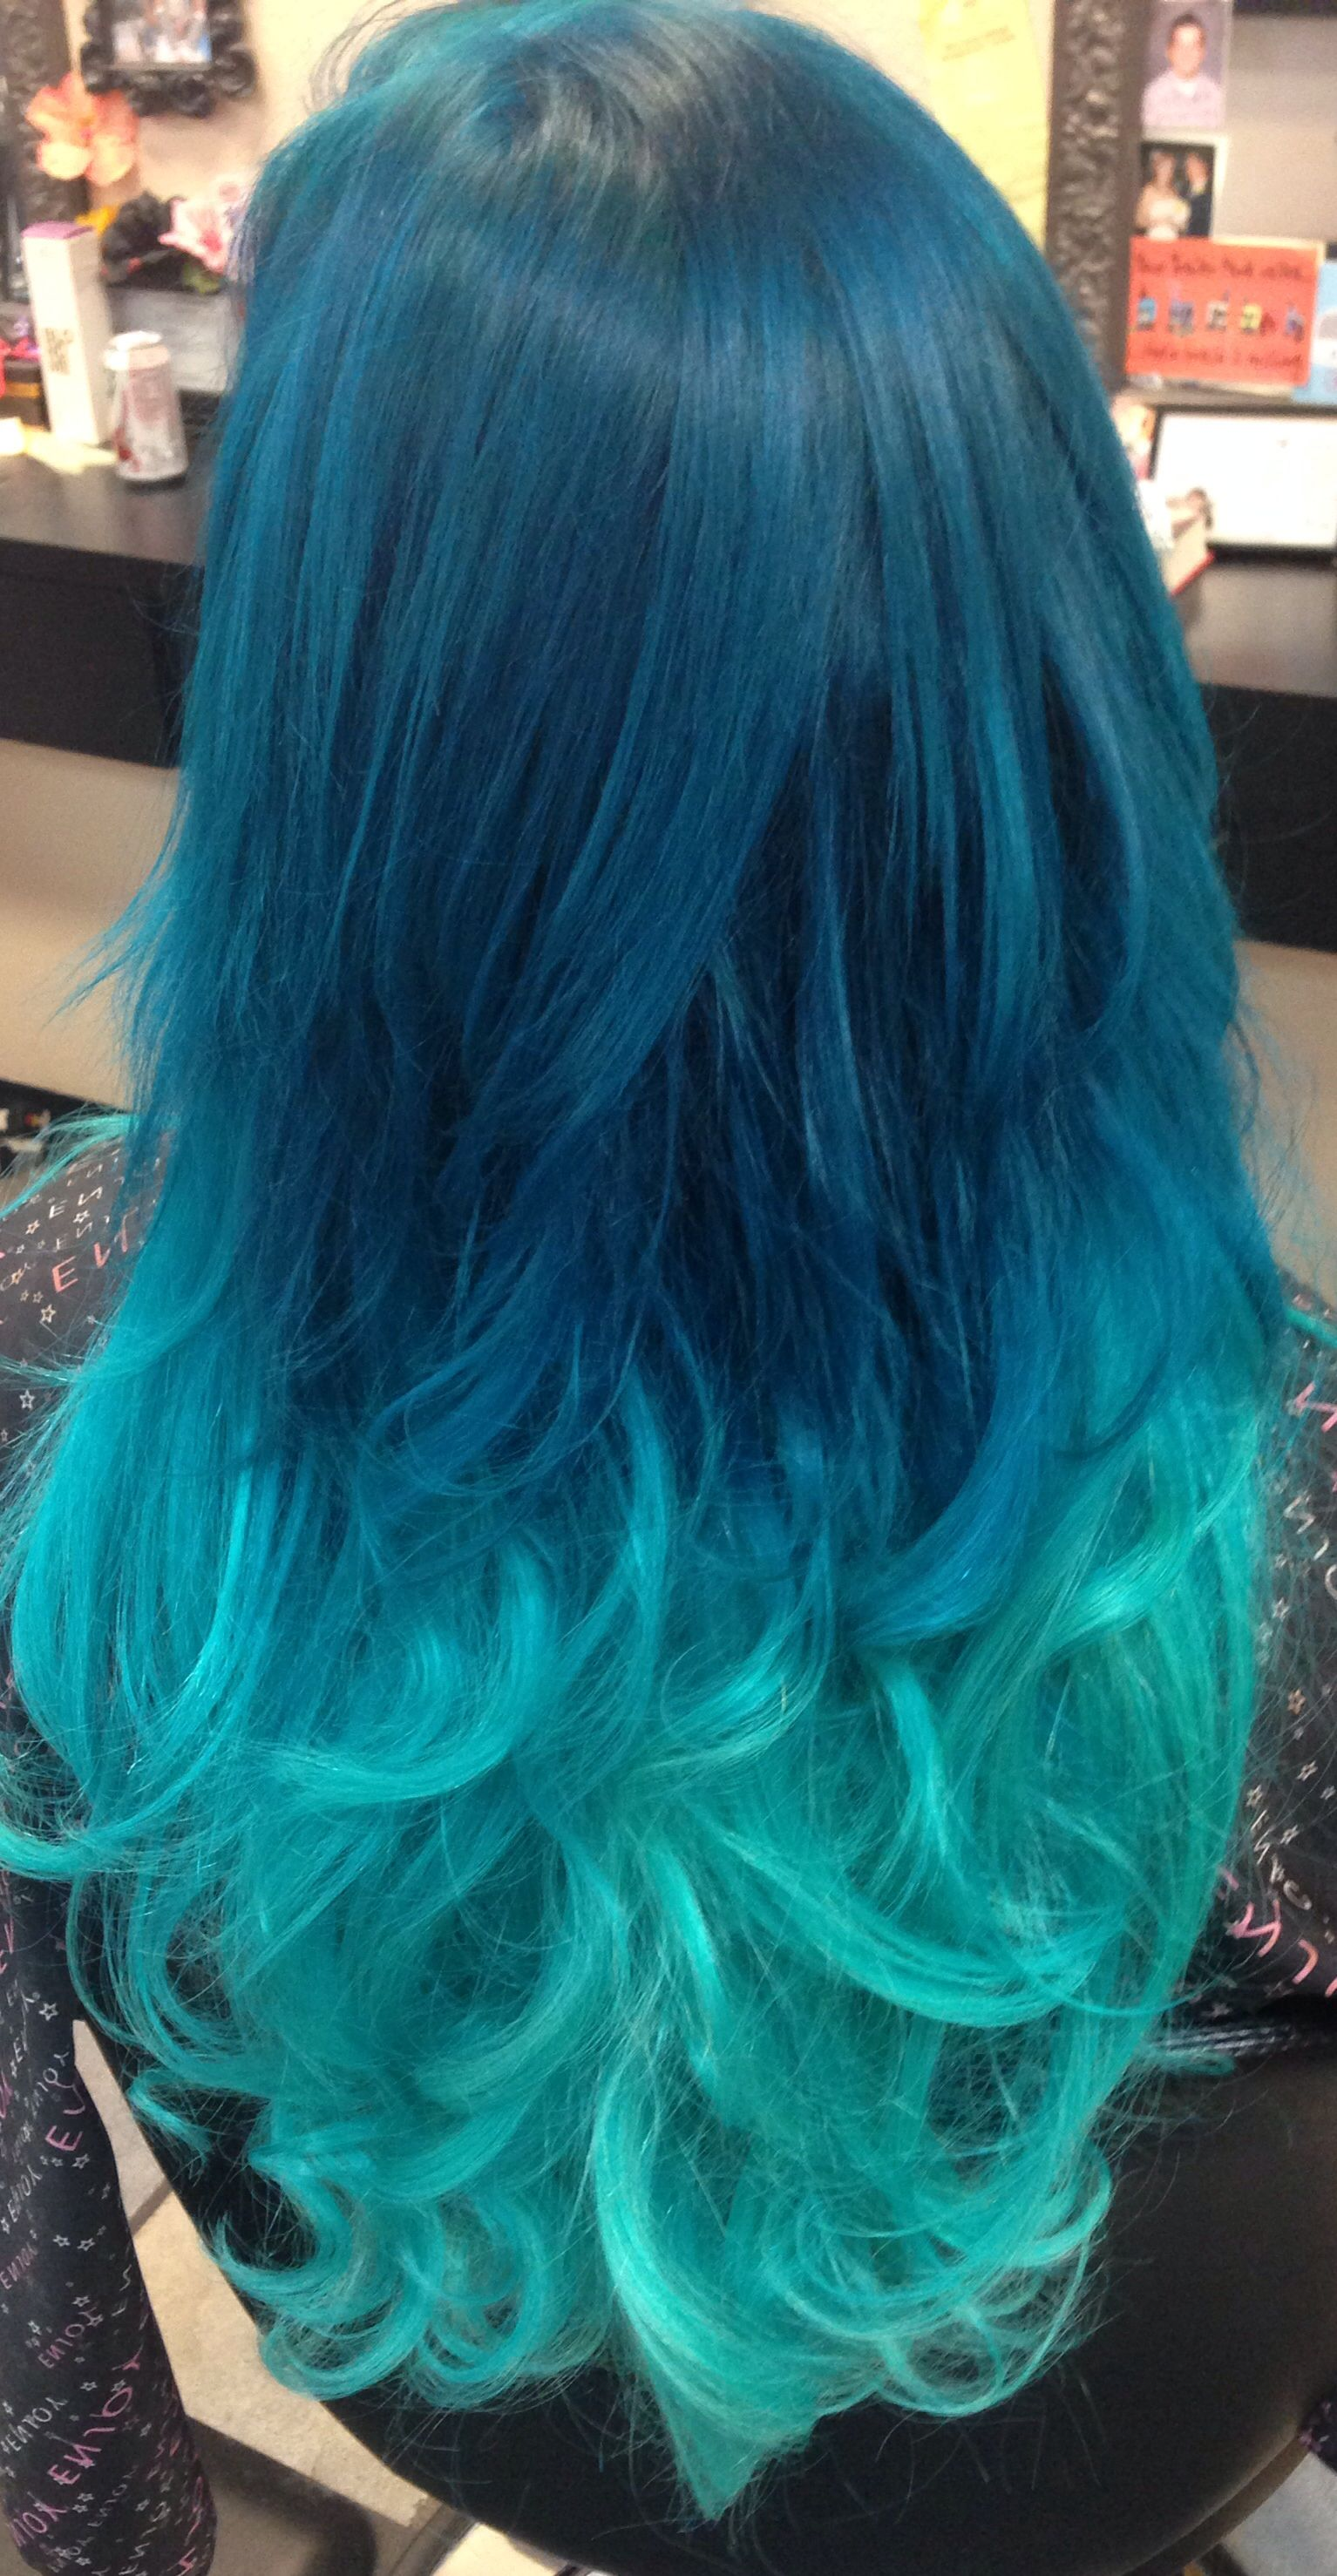 Turquoise pastel ombré hair with extensions added in for length